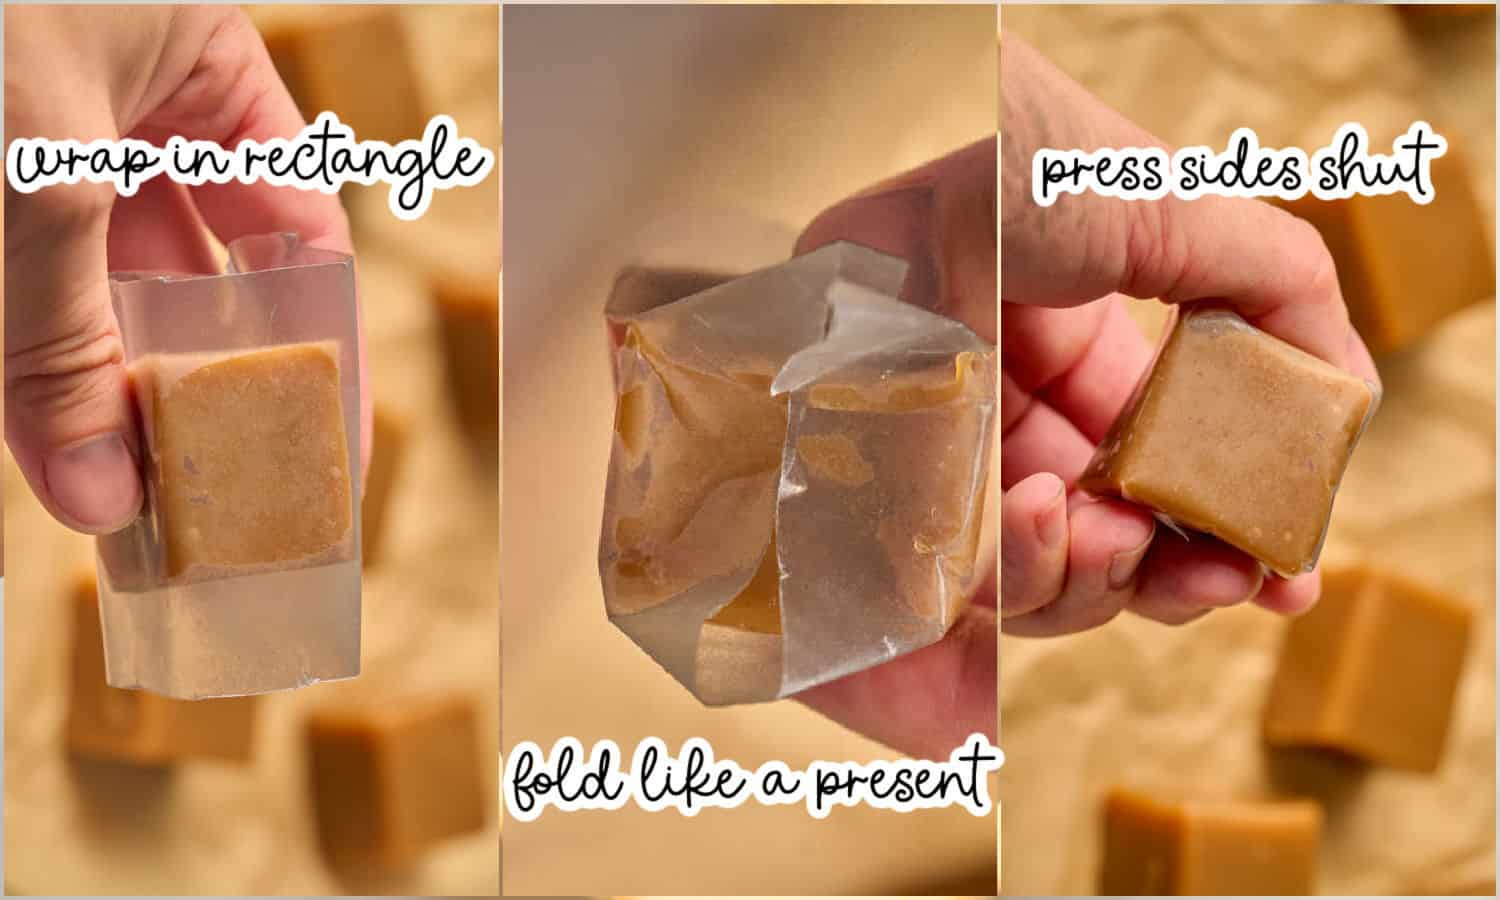 grid of 3 images showing how to wrap soft caramels in a rectangular piece of wax paper